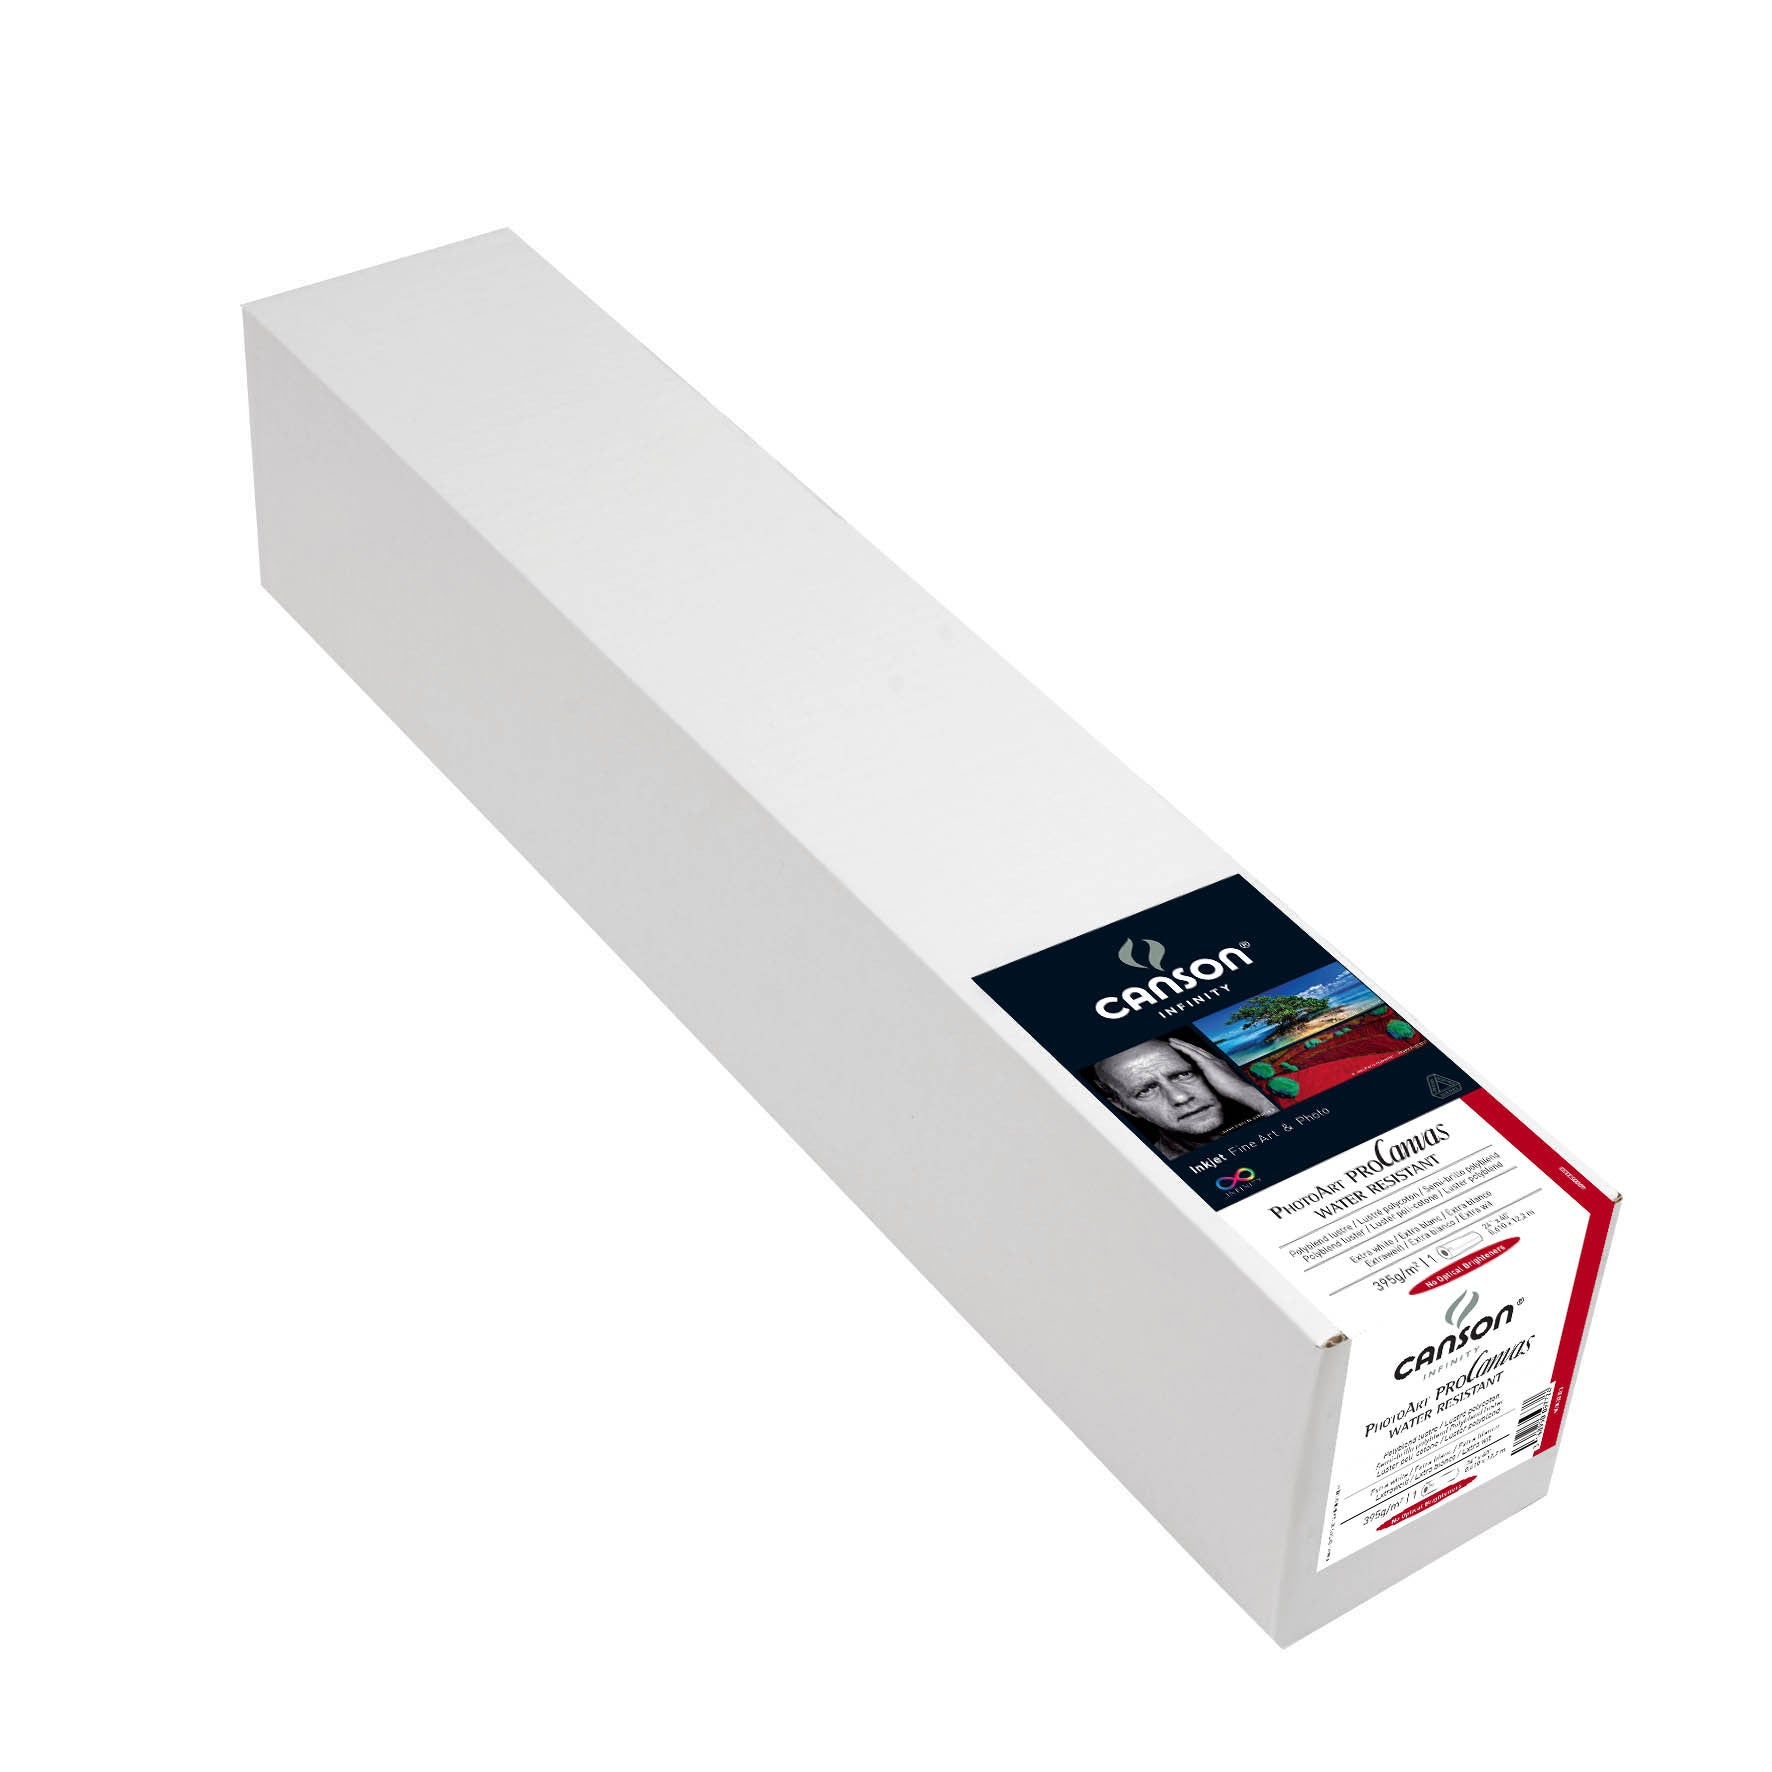 "Canson Infinity PhotoArt Pro Canvas WR Luster - 395gsm - 24""x40' roll"